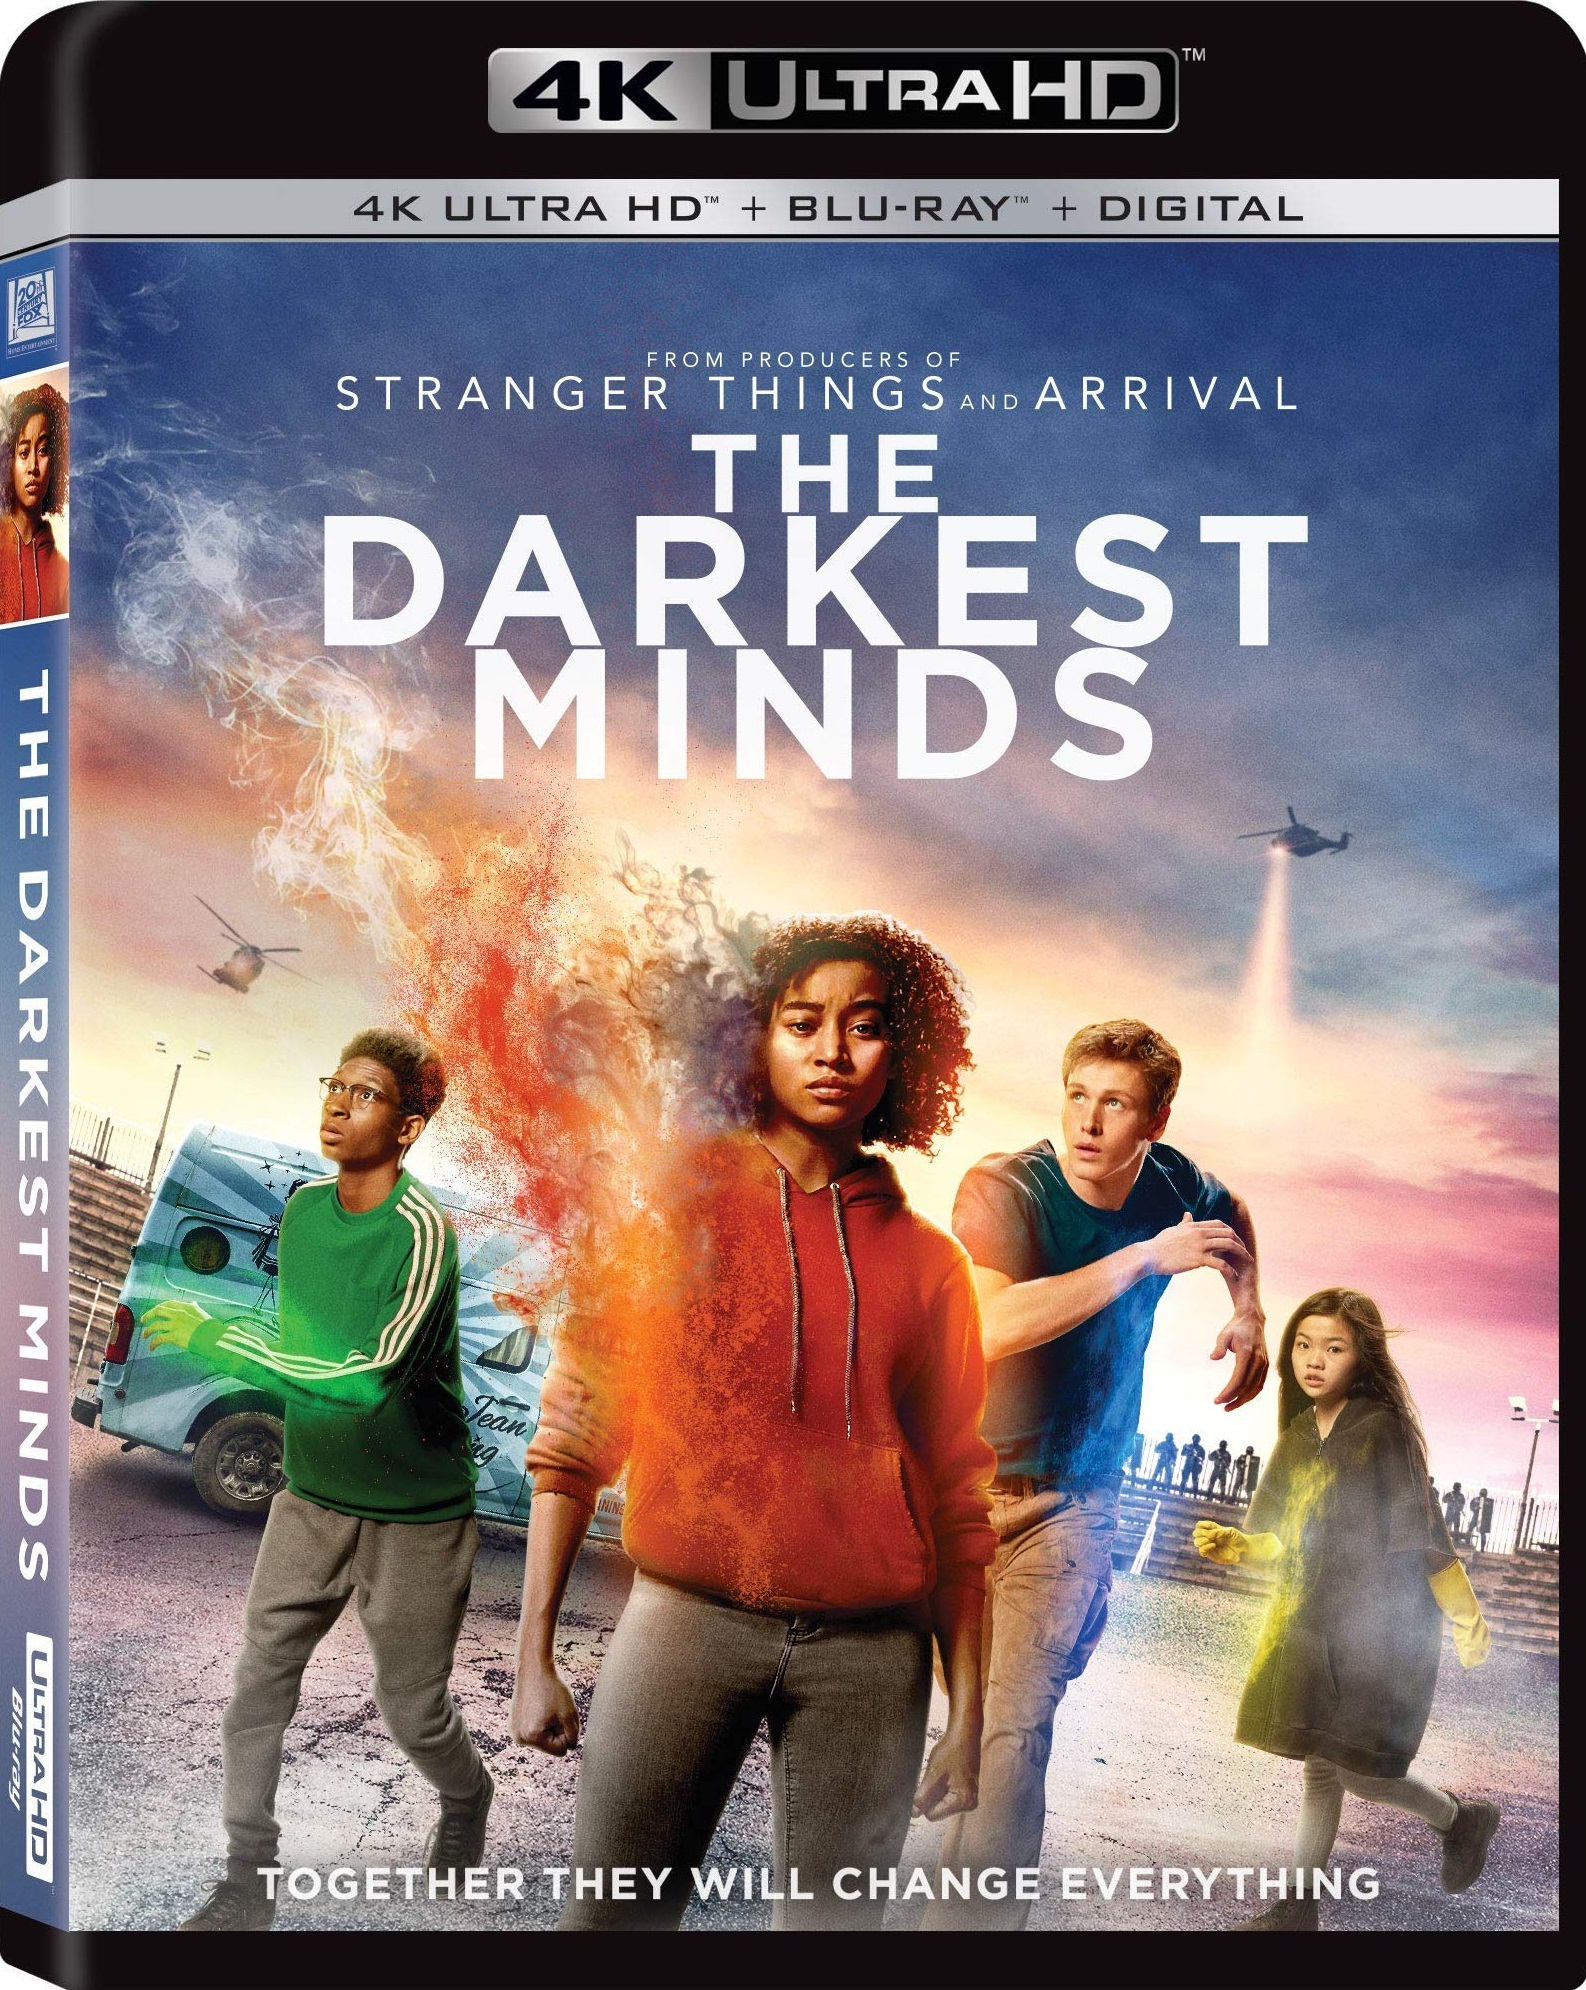 The Darkest Minds 4K (2018) Ultra HD Blu-ray